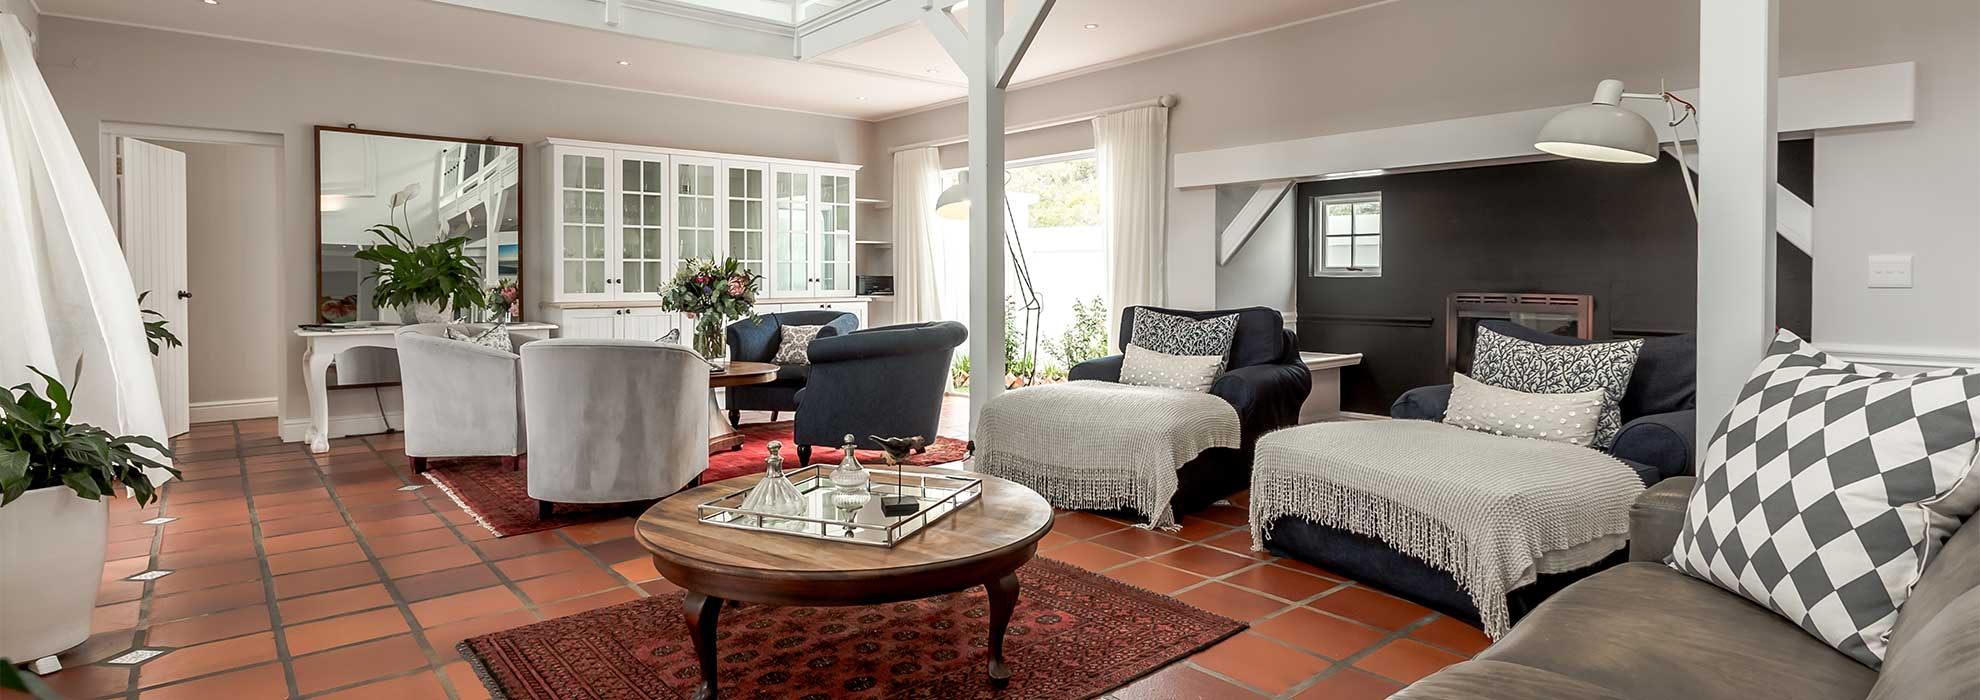 Bitou River House Plettenberg Bay